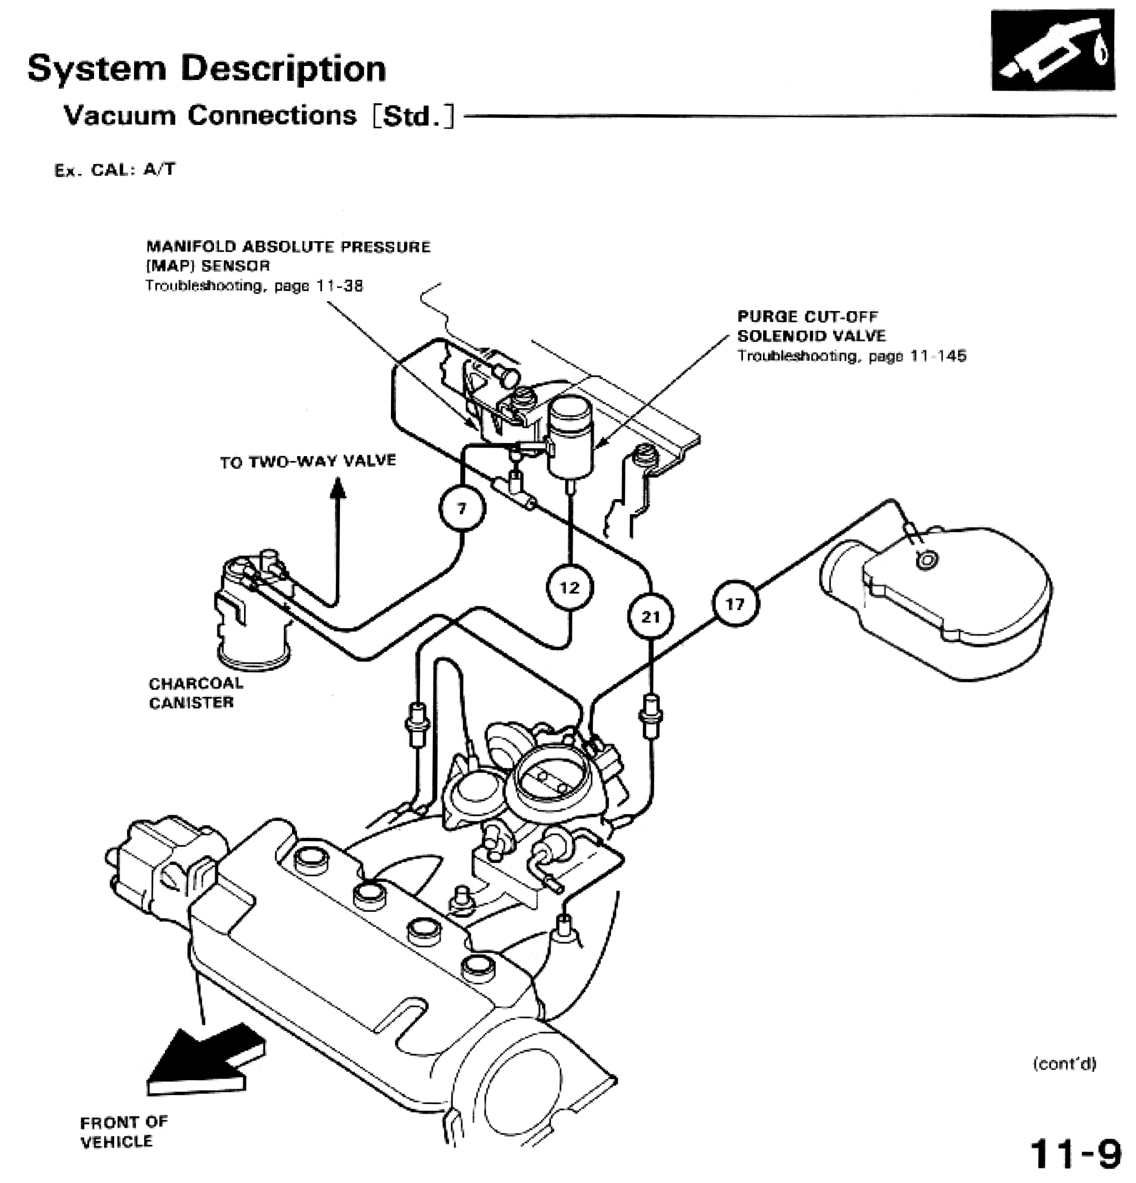 Mazda 3 0 V6 Engine Vacumm Lines Diagram Real Wiring 2005 Ford Escape Example Electrical Rh Cranejapan Co